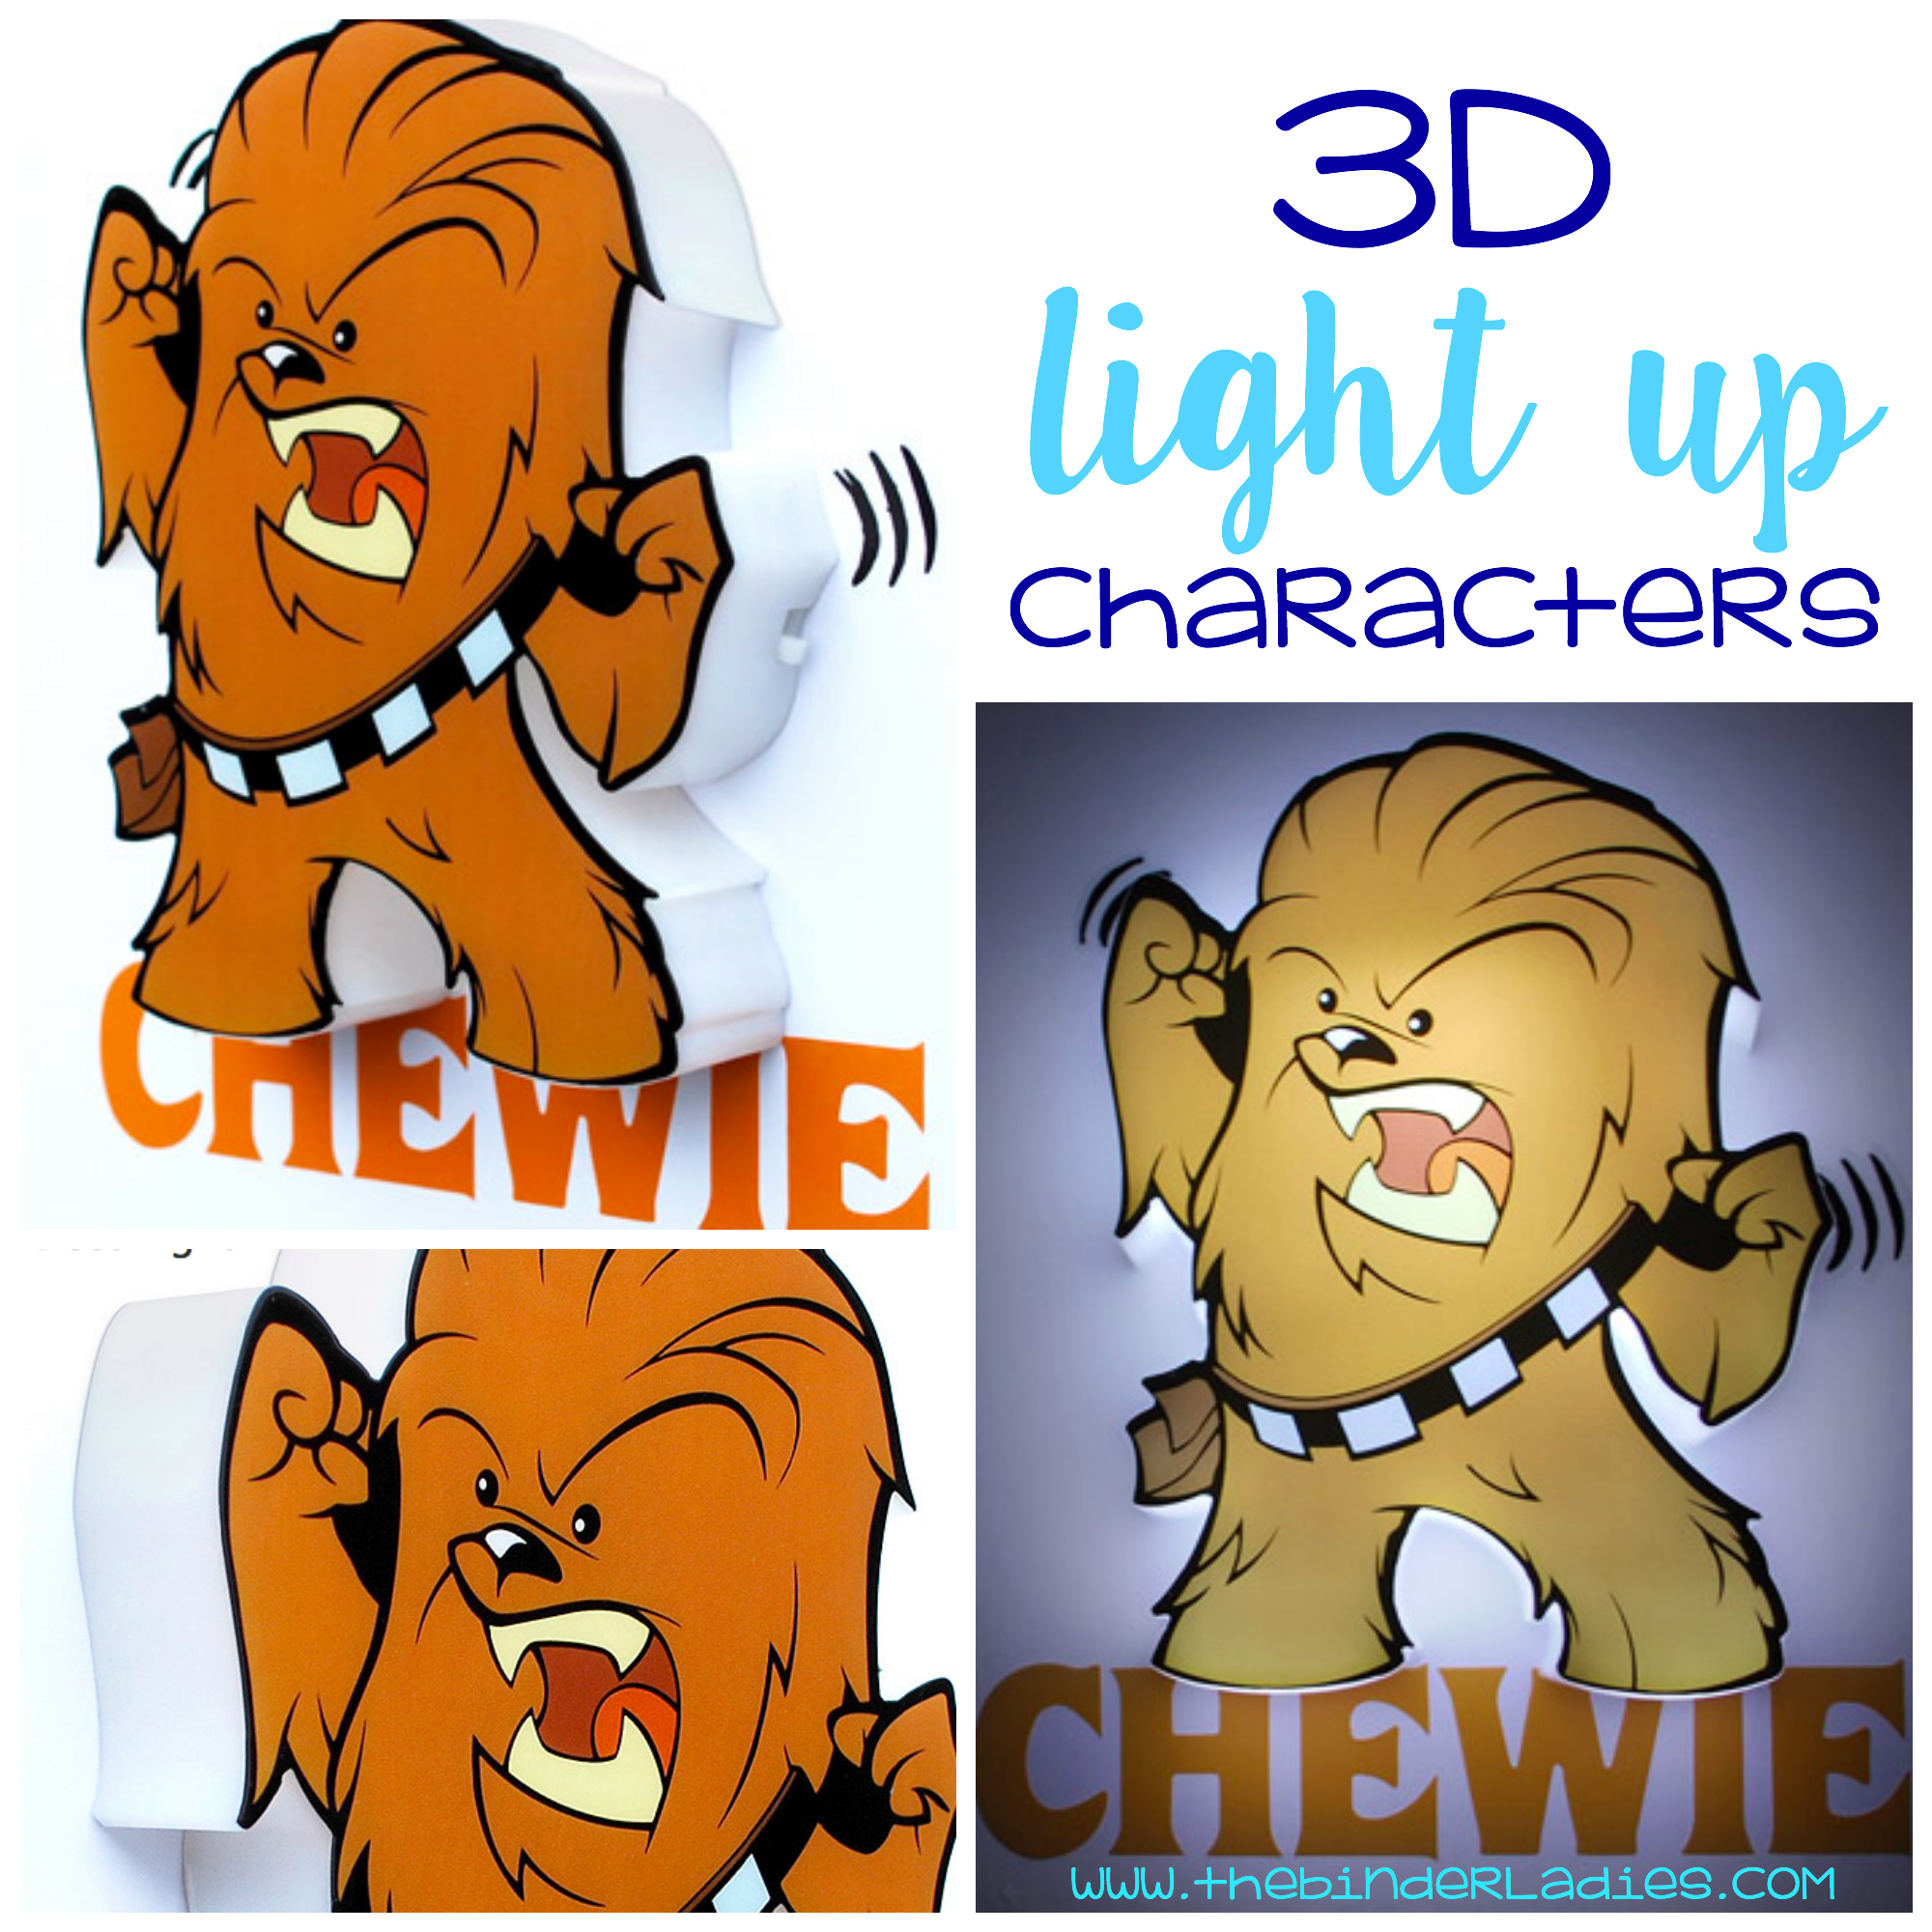 3D Deco Lights Mini Lights - favorite characters come to life on your wall!